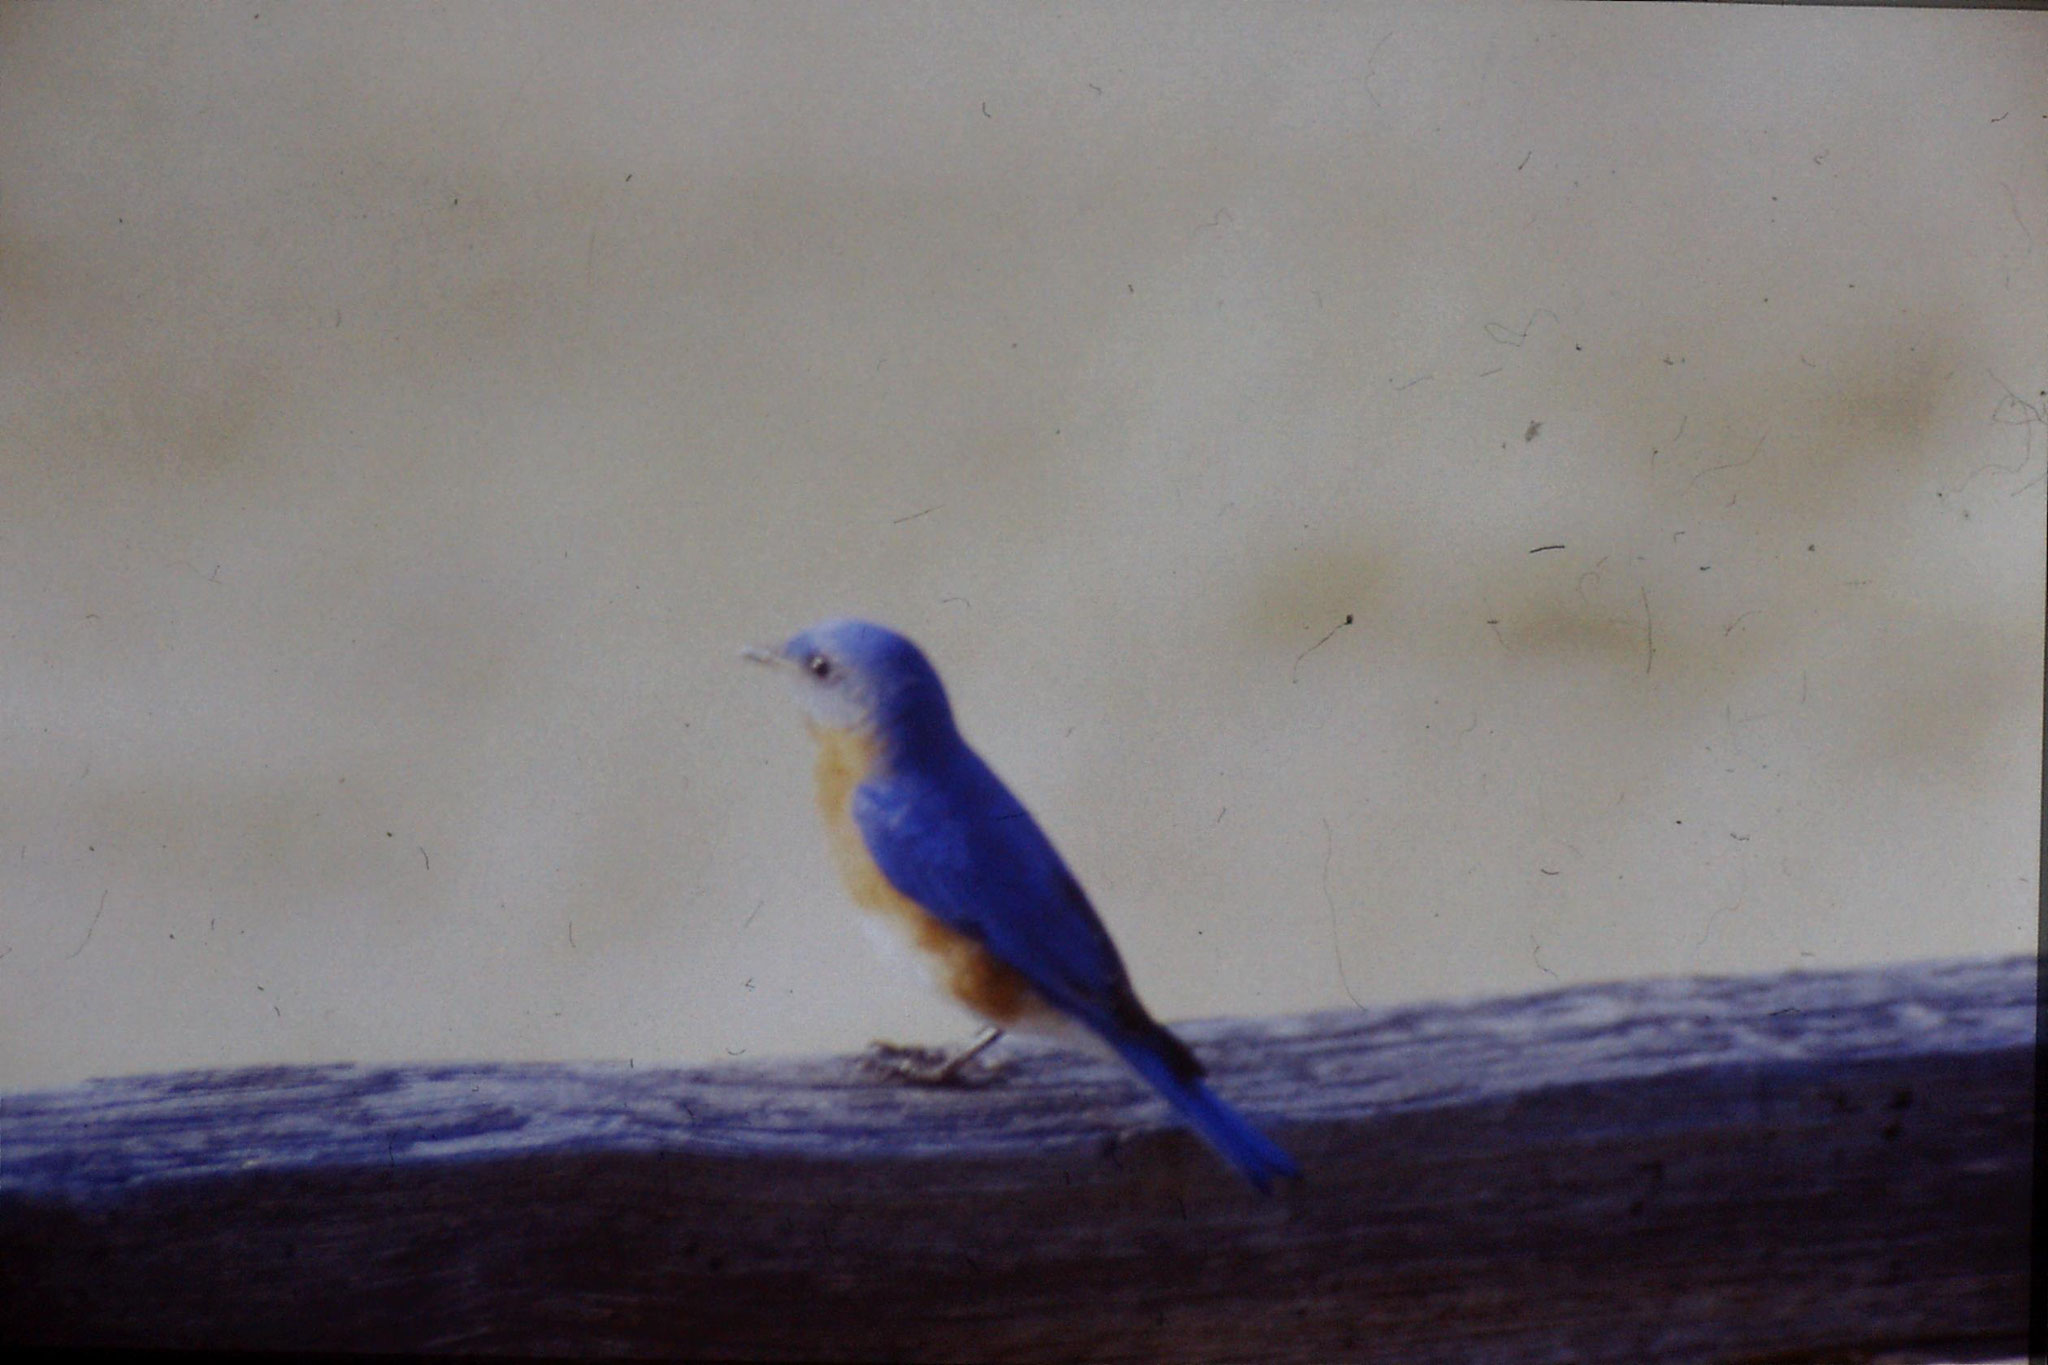 21/3/1991: 5: Blue Bird at Mary Potter's place